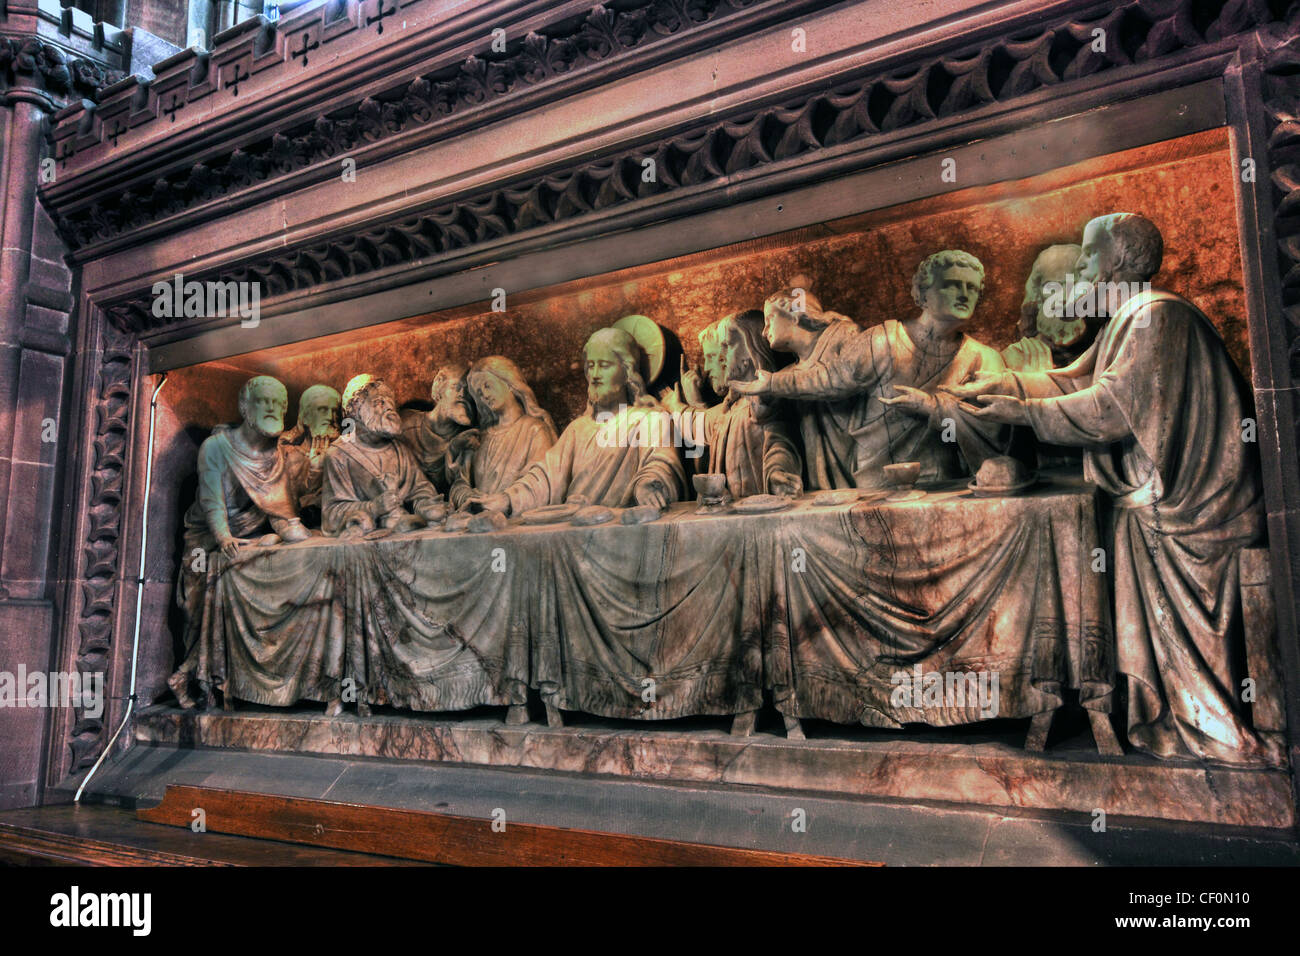 St Wilfrids, Davenham Last Supper Frieze in stone - Stock Image